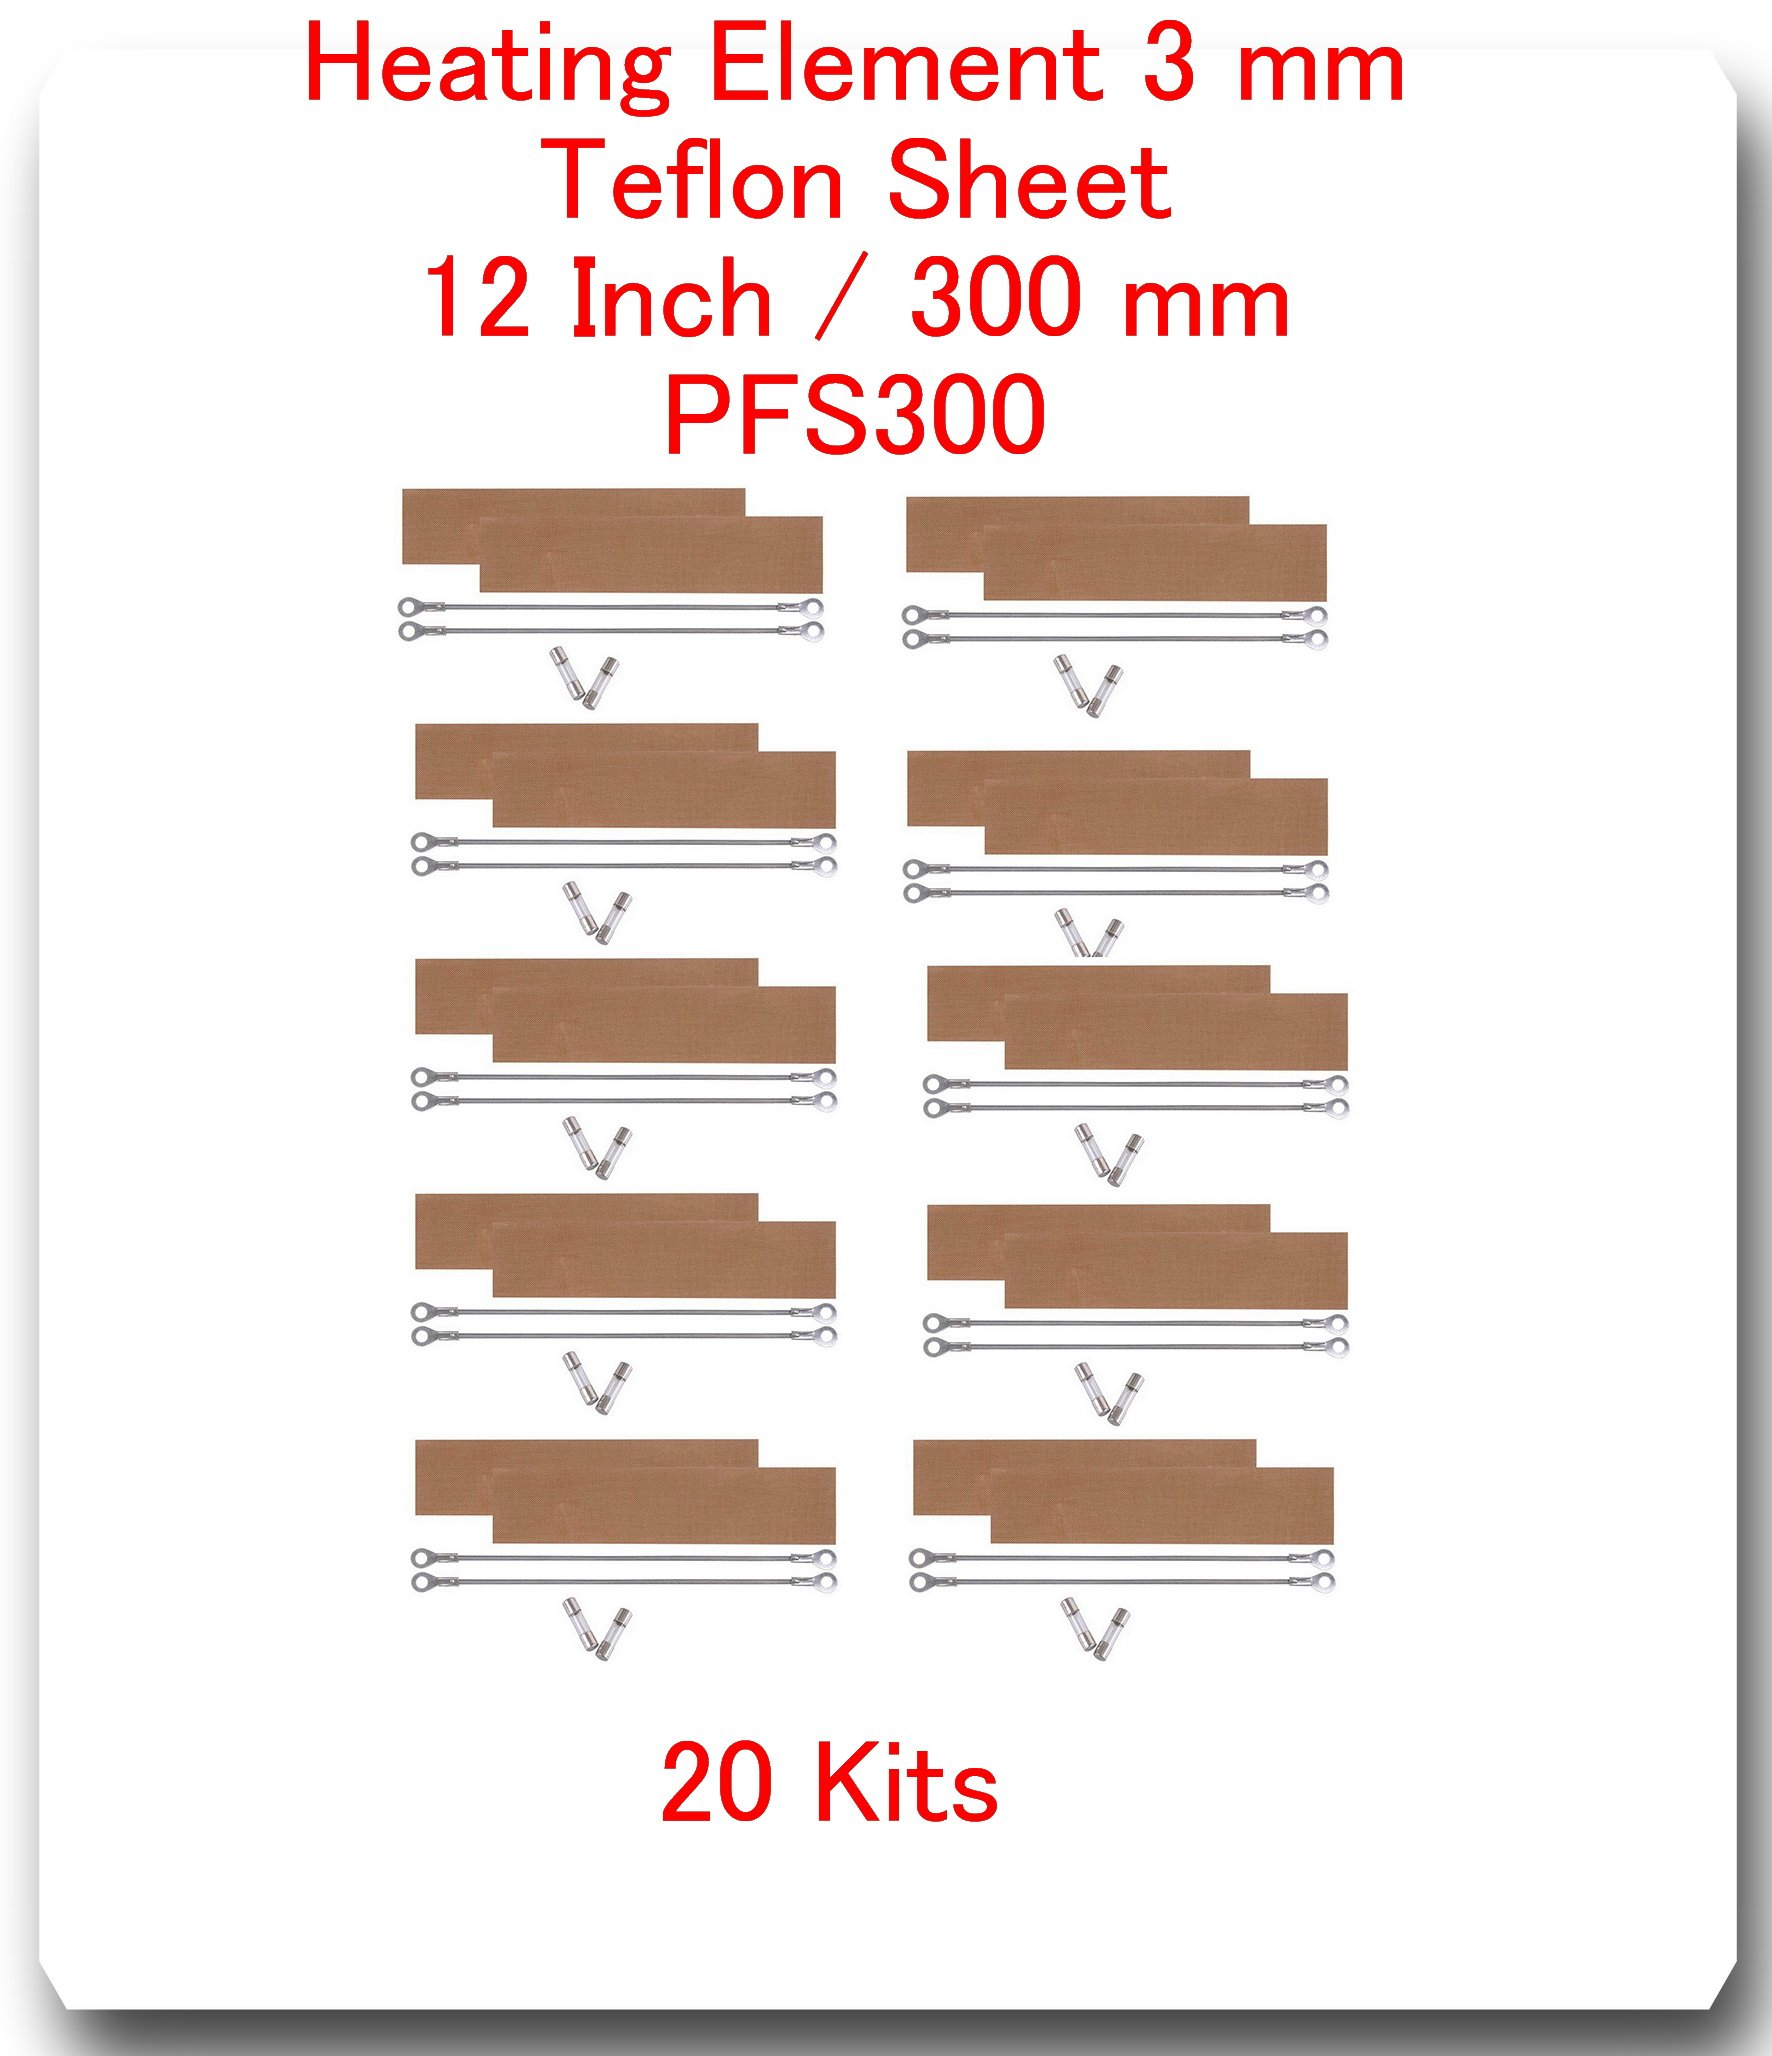 "(20 Kits) Replacement Elements for Impulse Sealer PFS-300 12""(20 Heating Elements 3MM+20 Teflon Sheets+ 20 Fuses)"